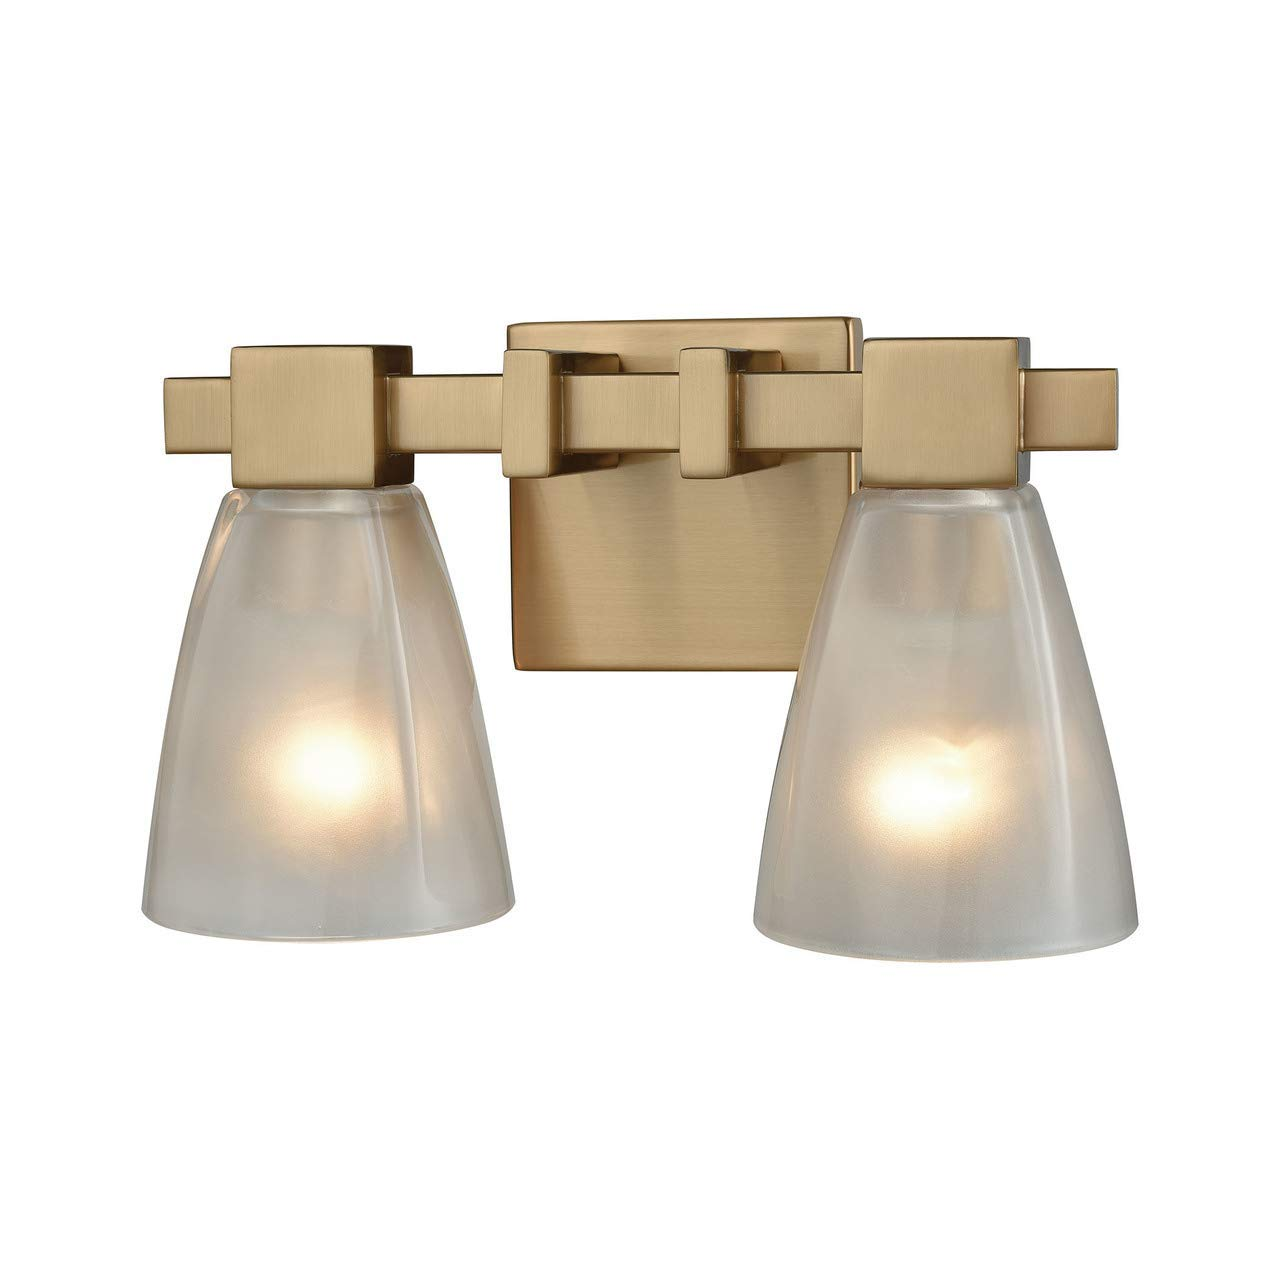 Elk lighting 11991 2 vanity lighting fixtures 8 x 12 x 7 brass amazon com